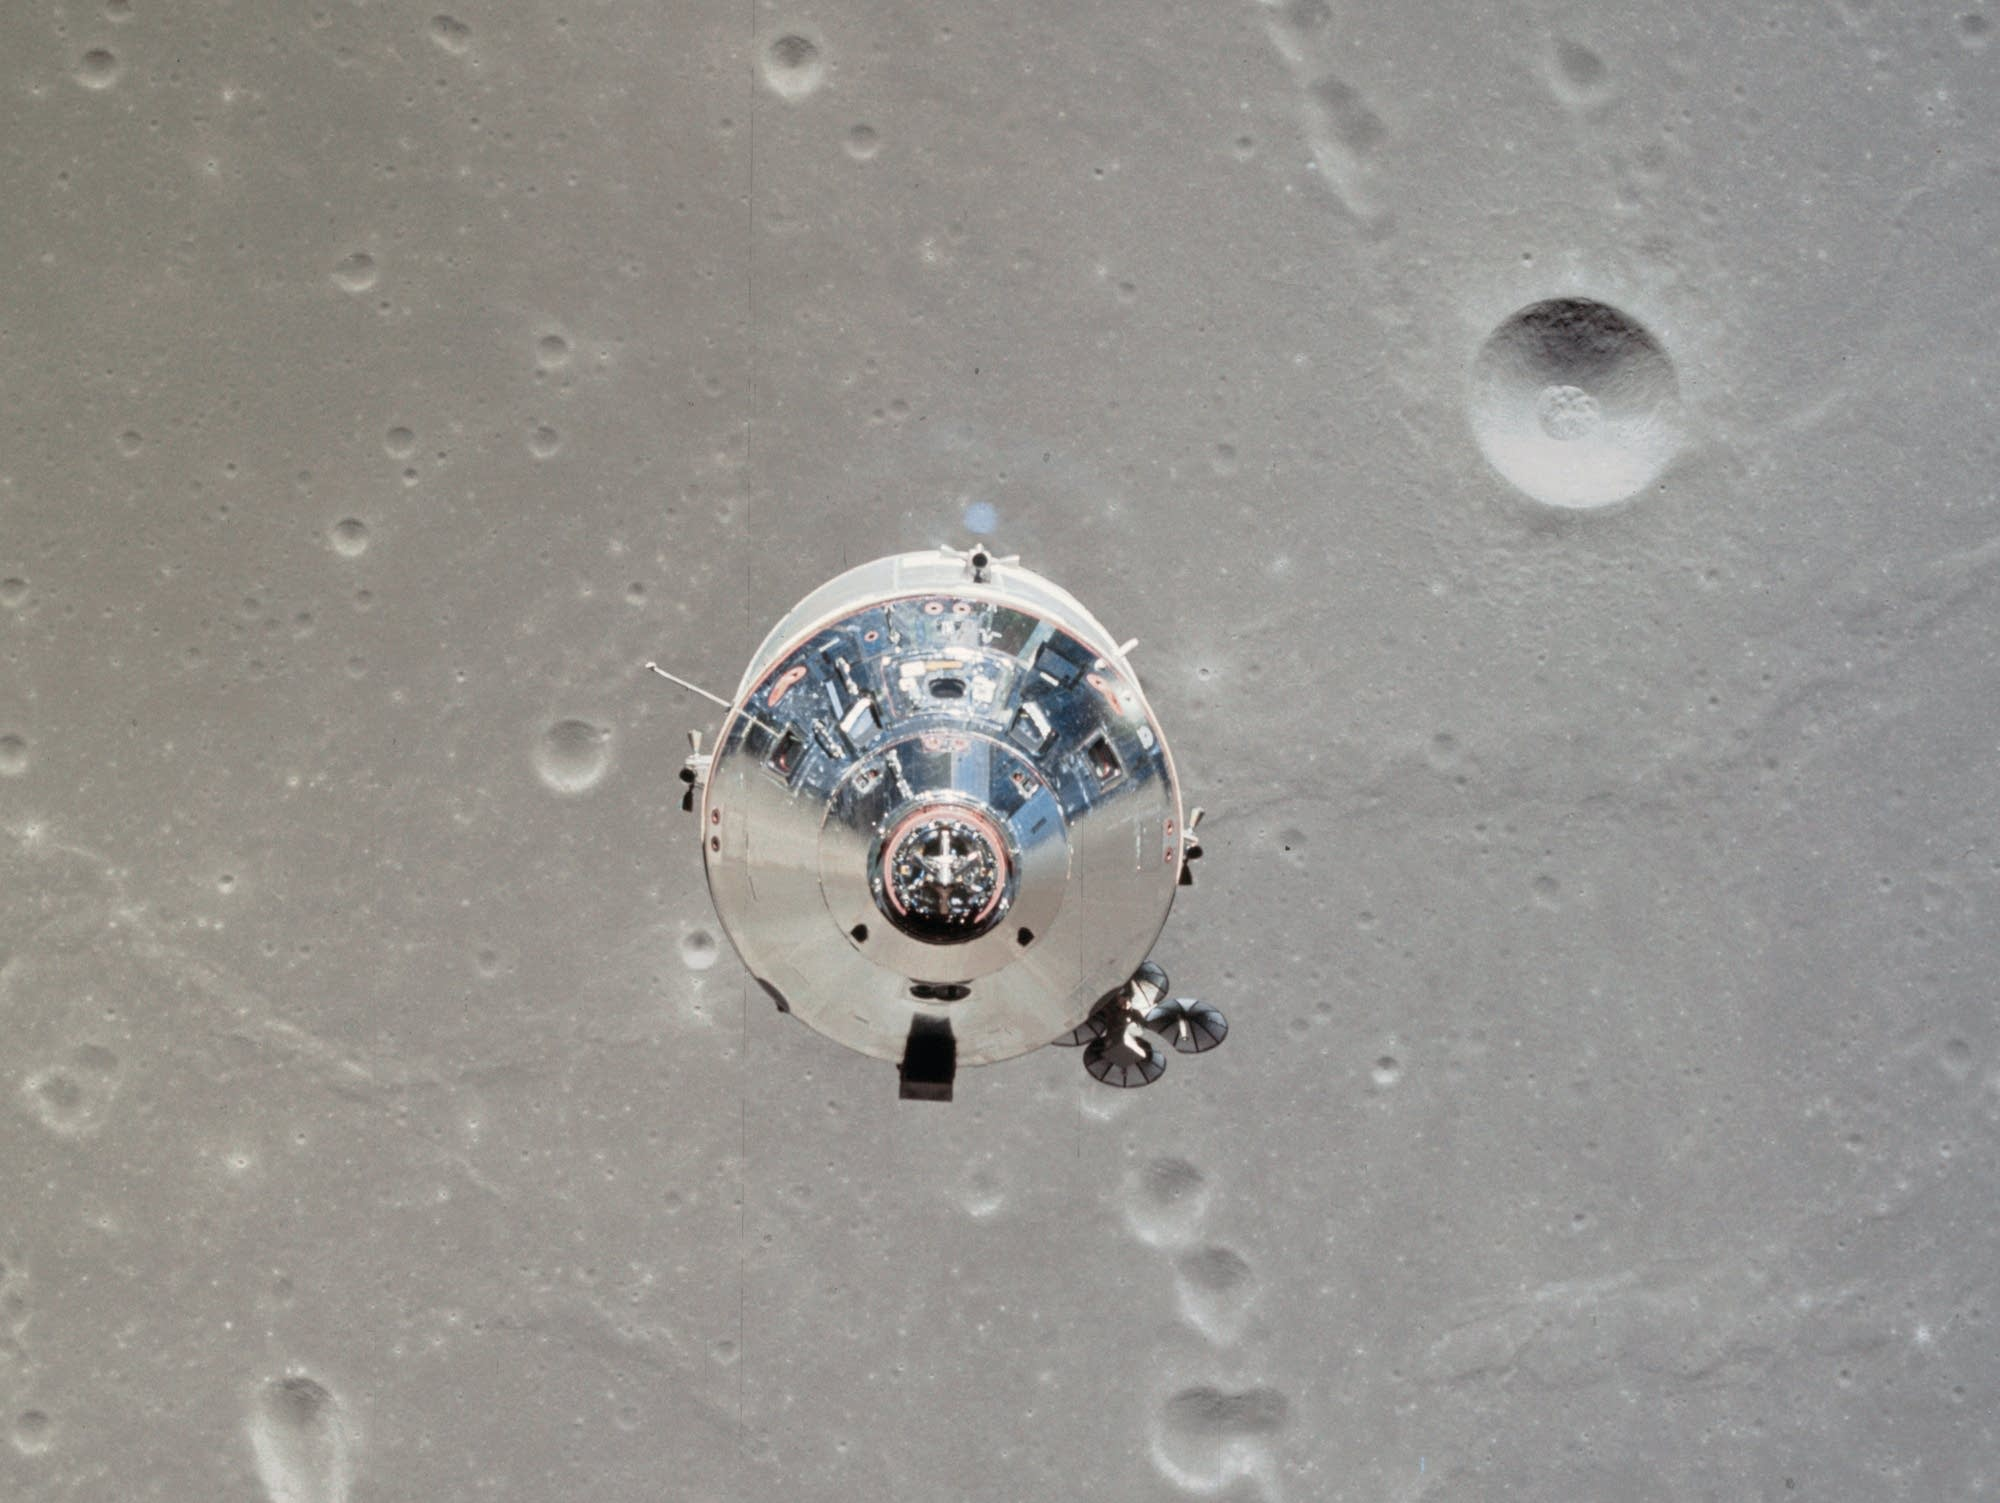 The Apollo 11 lunar lander viewed from the command service module